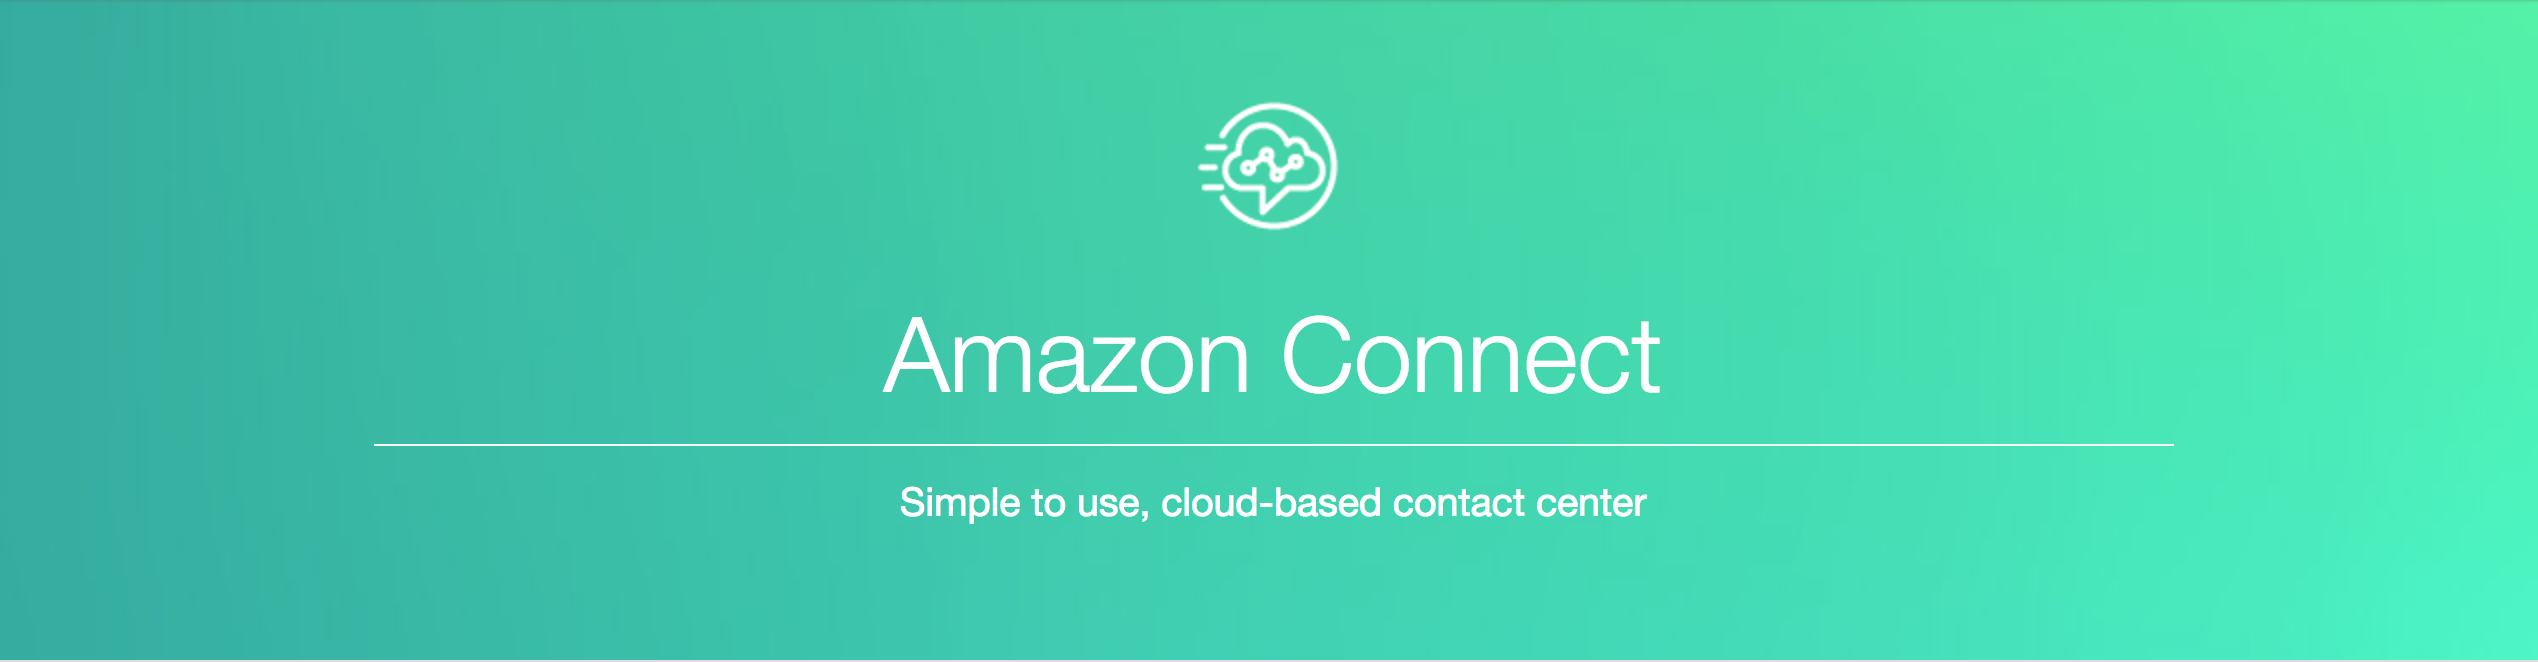 Supercharge Your Amazon Connect Flows Using AWS Lambda, Node.js and ...